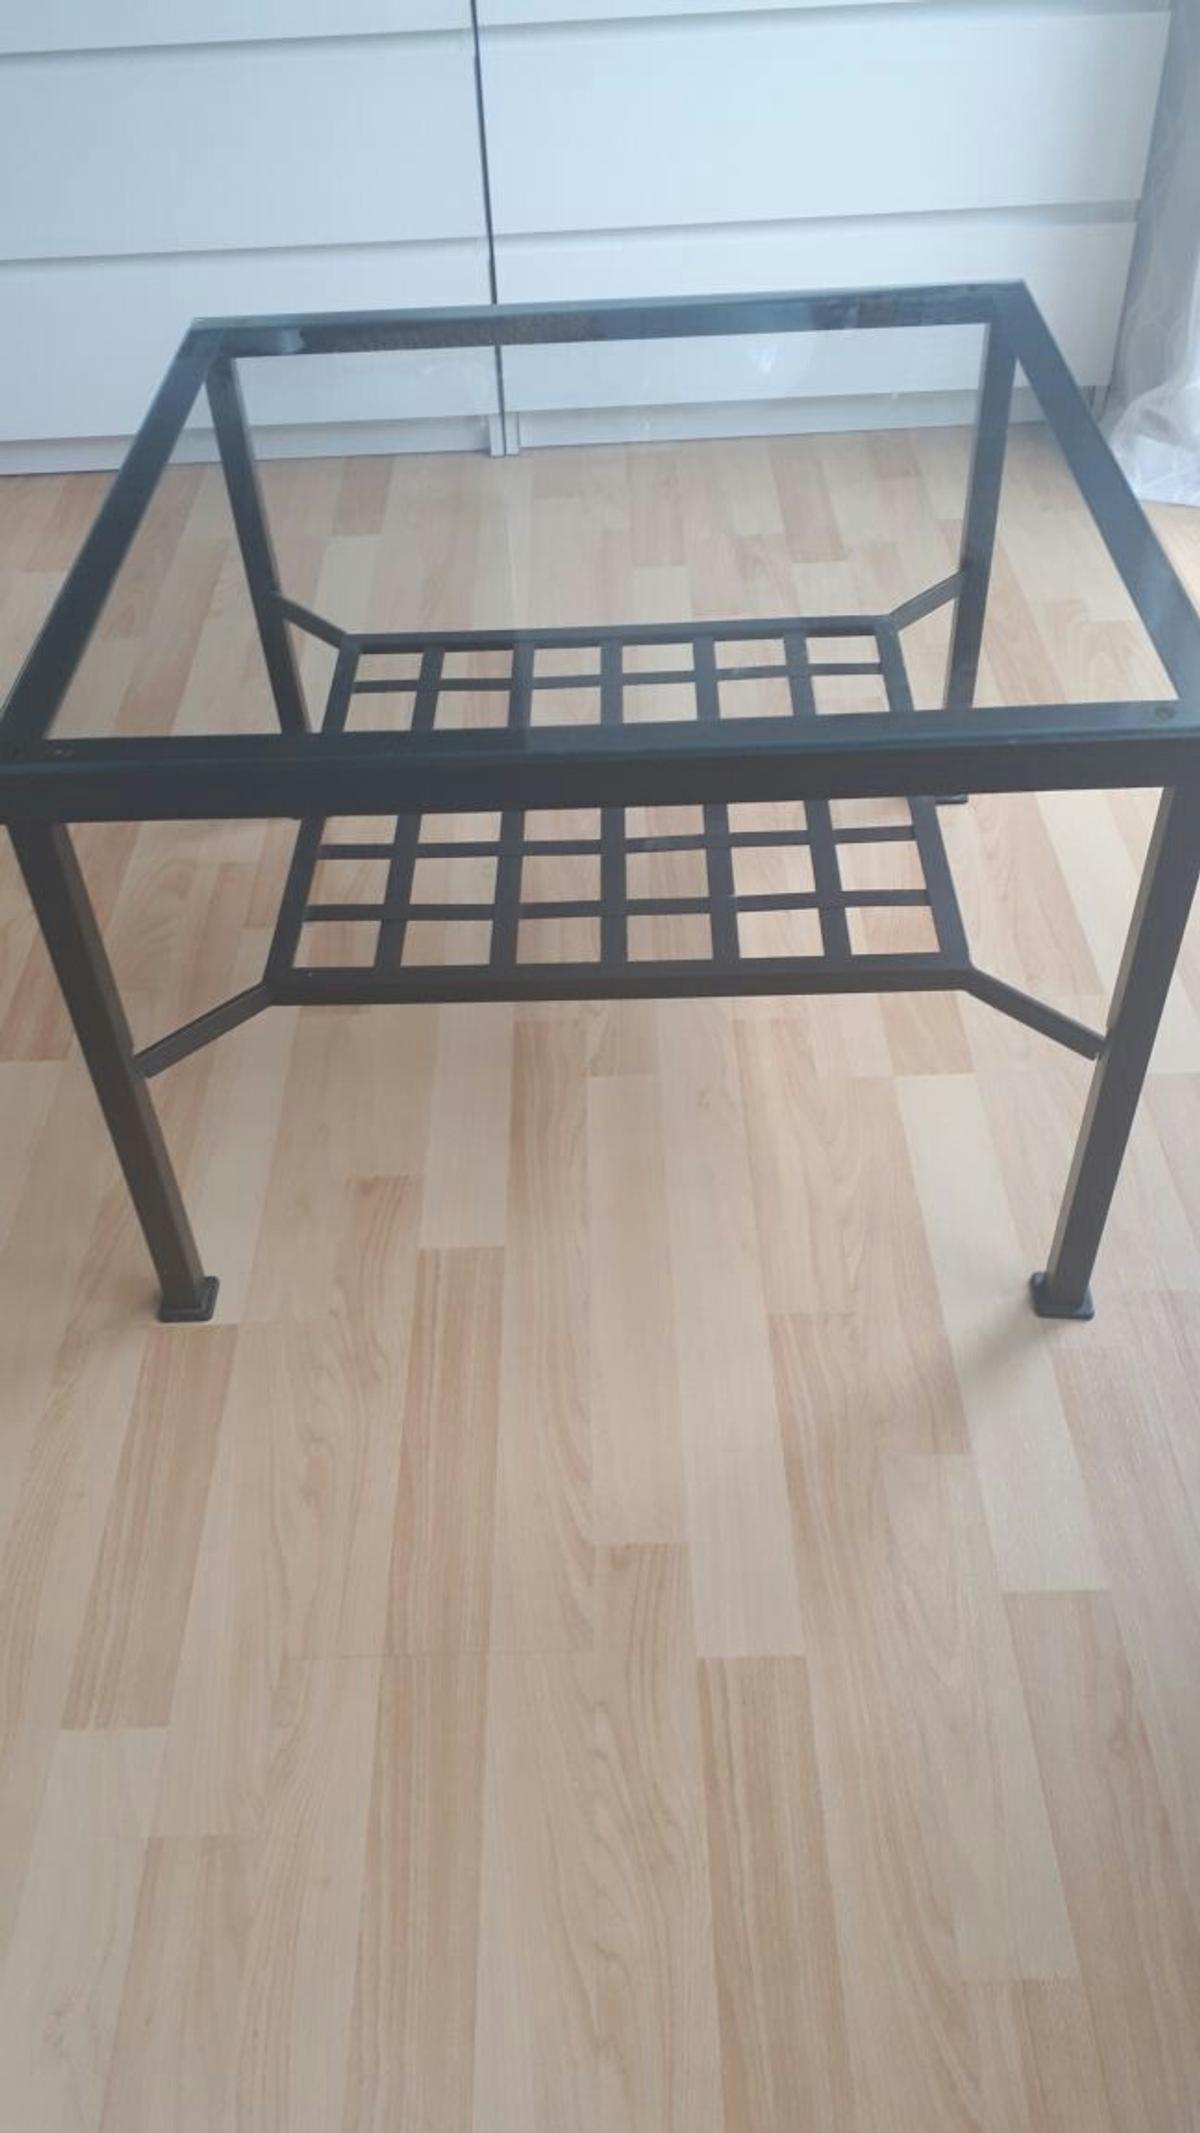 Ikea Glastisch In 64319 Pfungstadt For 2500 For Sale Shpock